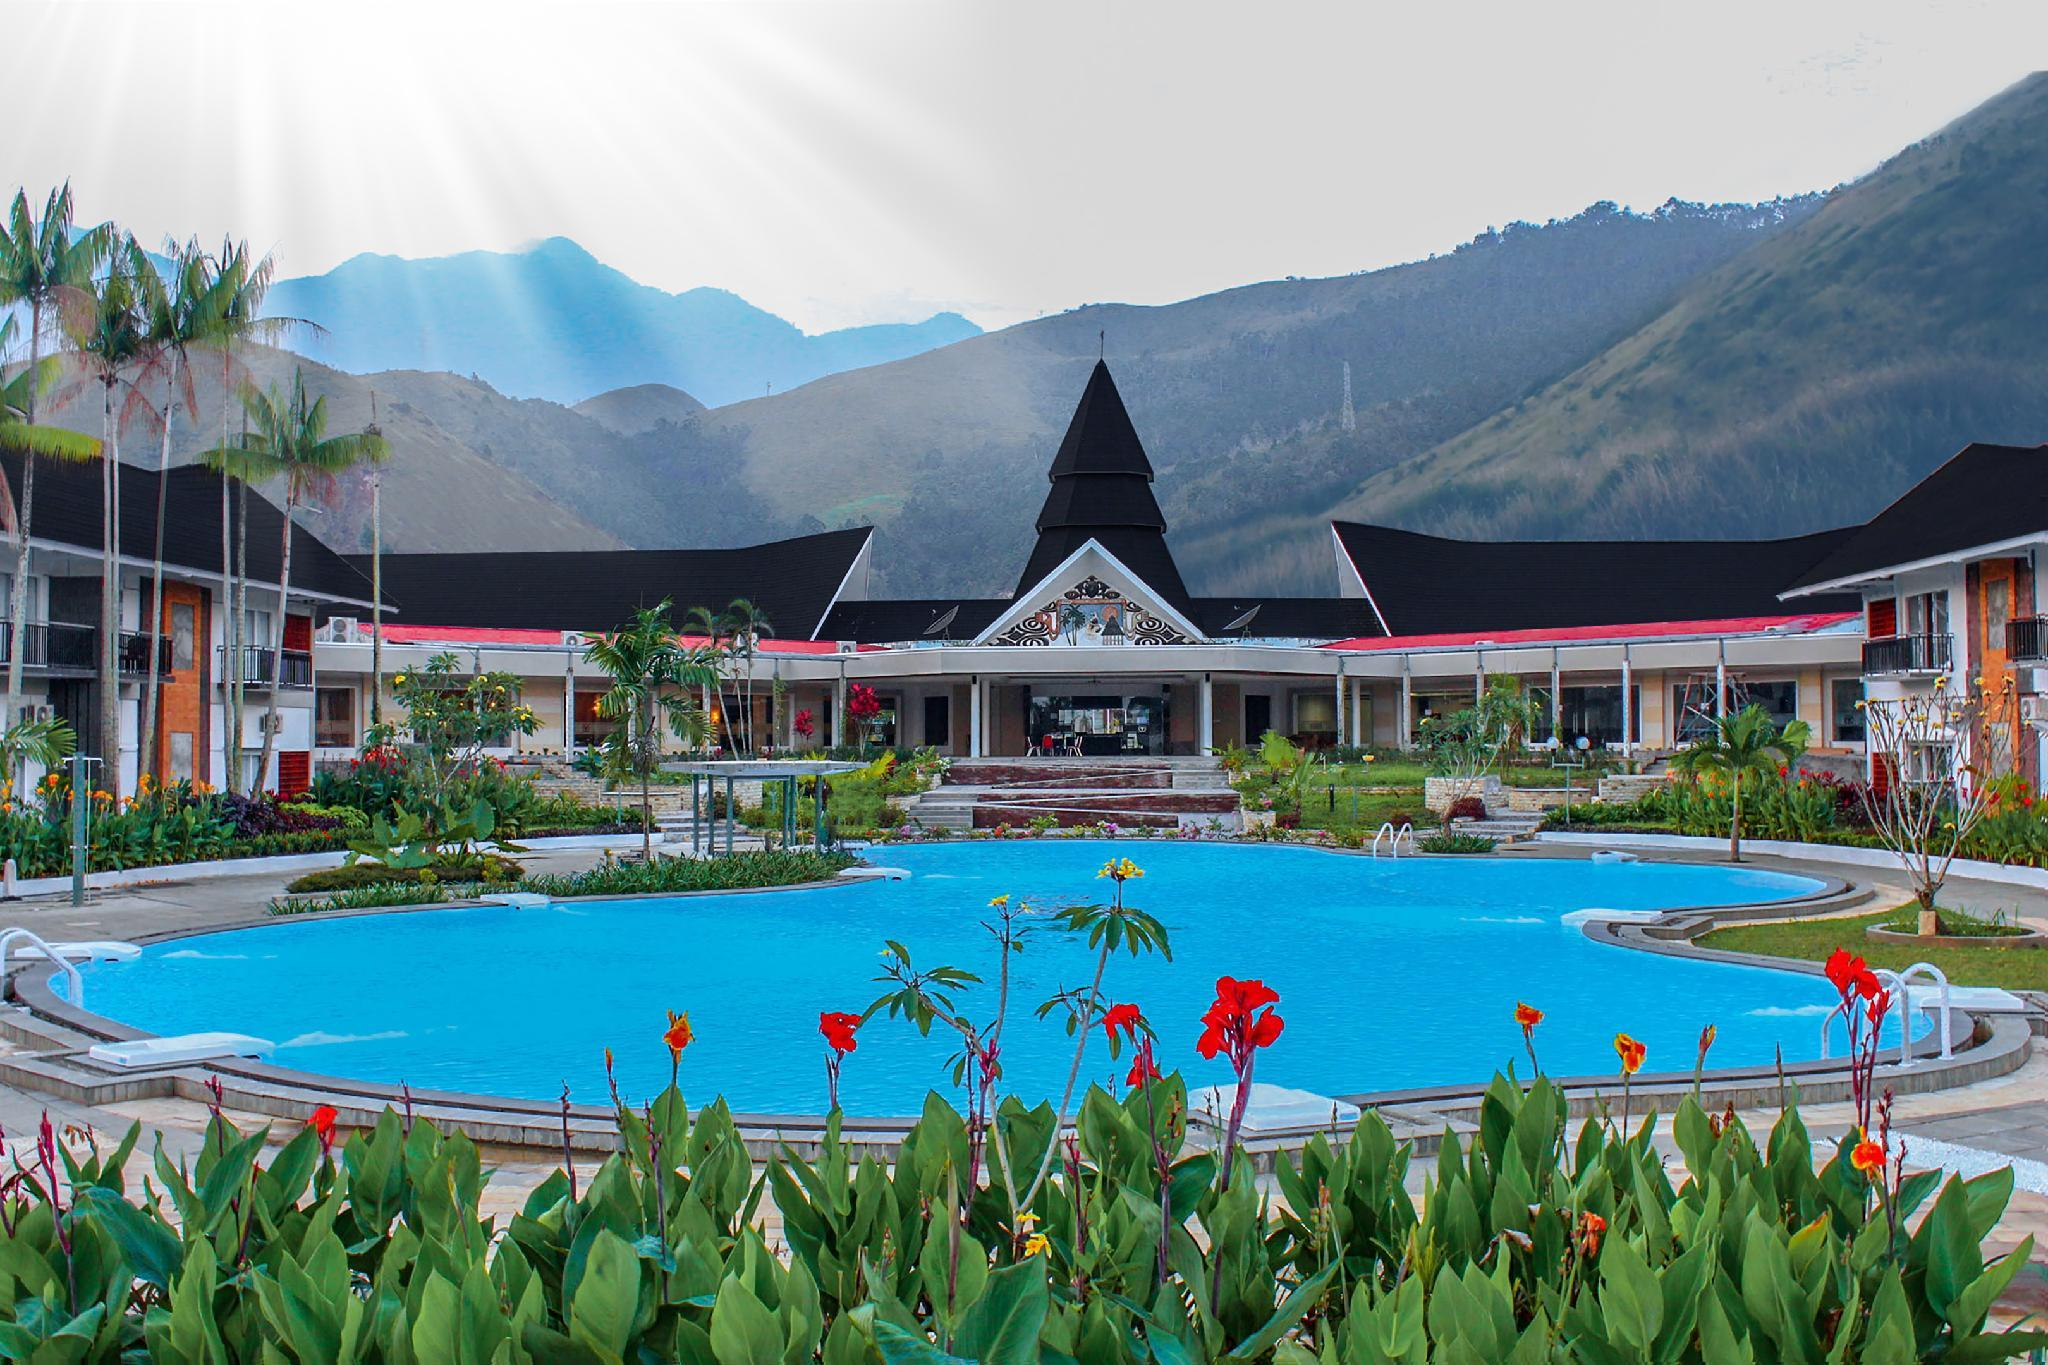 Suni Garden Lake Hotel And Resort Managed By Parkside